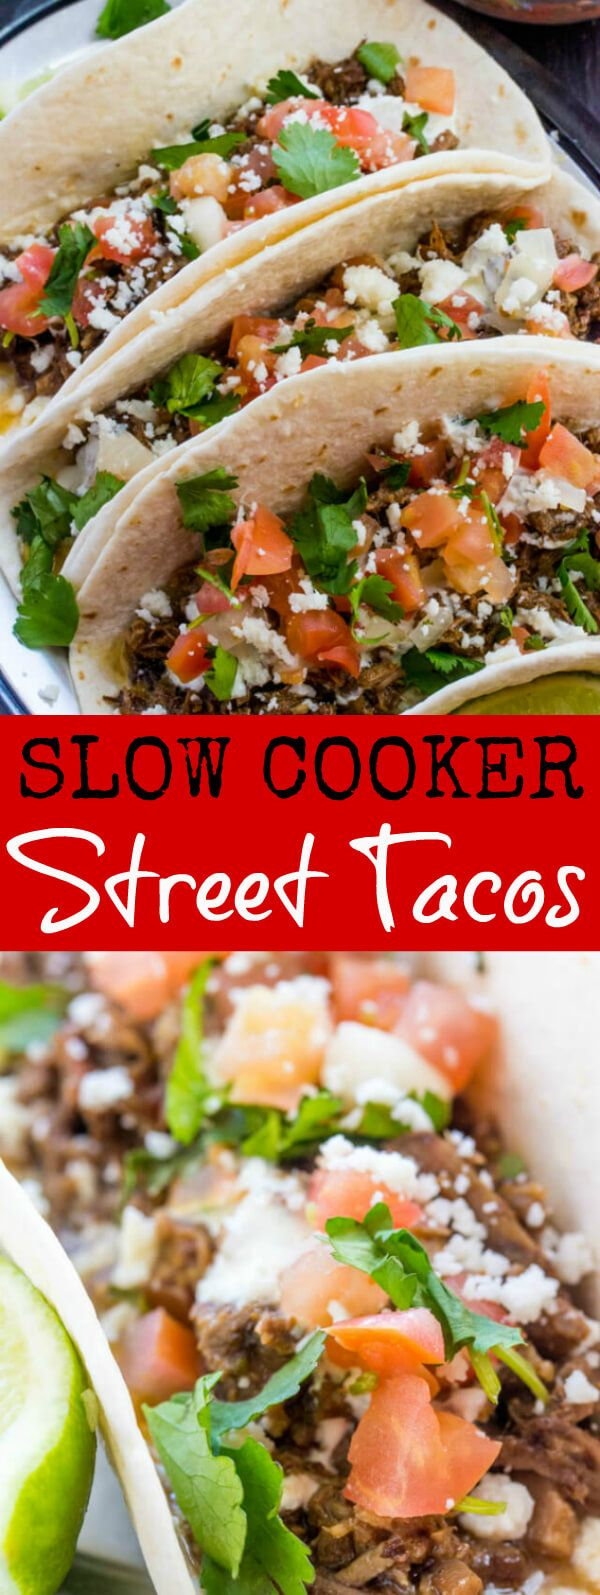 Moist, delicious and absolutely addicting these Slow Cooker Street Tacos are our go to meal for taco Tuesday! So I have a thing with tacos, like we love them around here. They are a meal my kids actually repeatedly ask me to make over and over and over again. But[Read more]